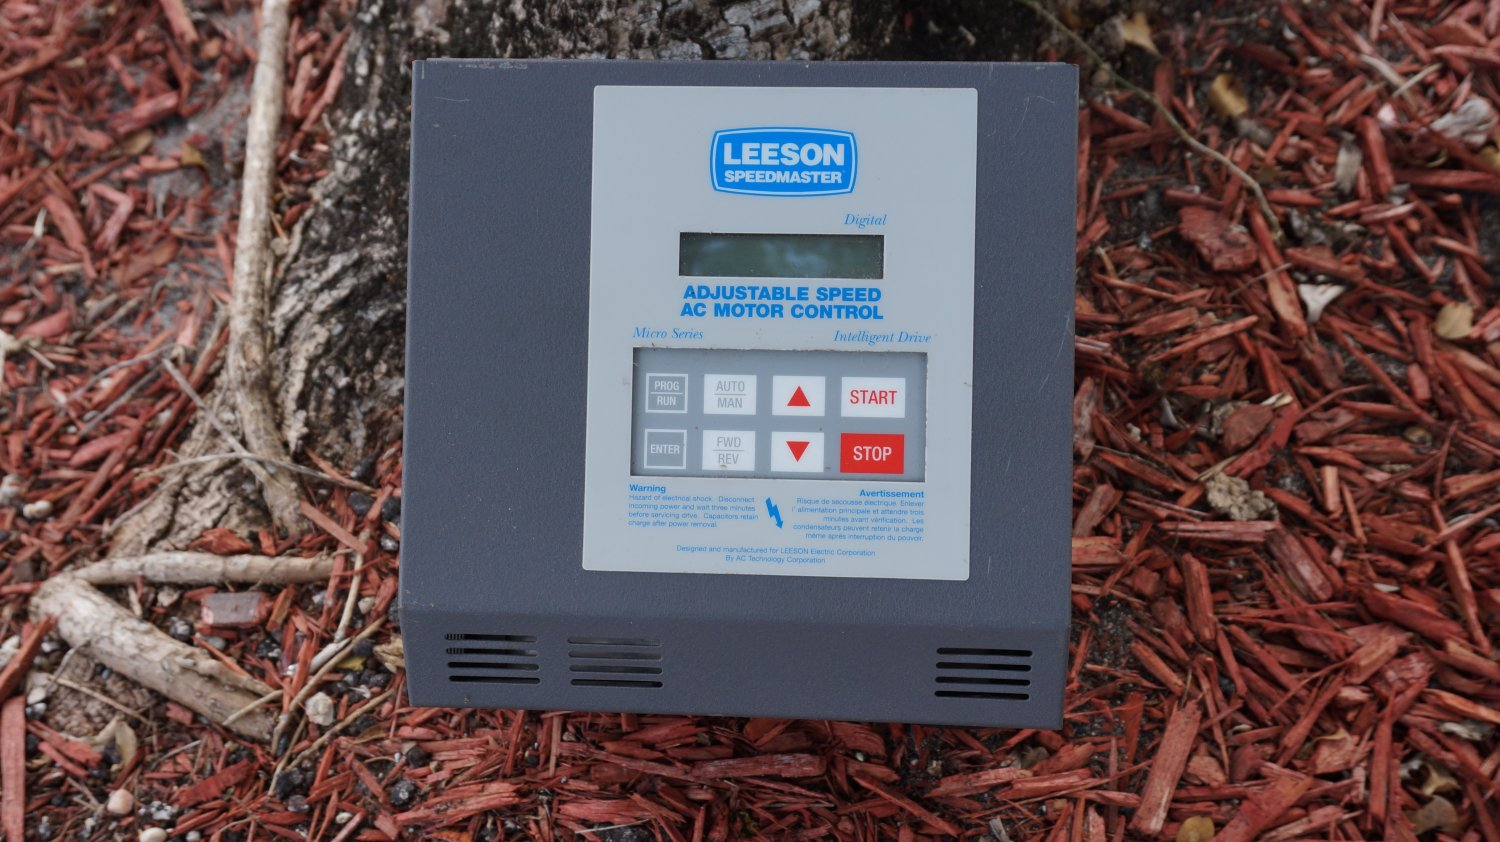 LEESON SPEEDMASTER MICRO SERIES ADJUSTABLE SPEED AC MOTOR CONTROL 8/16